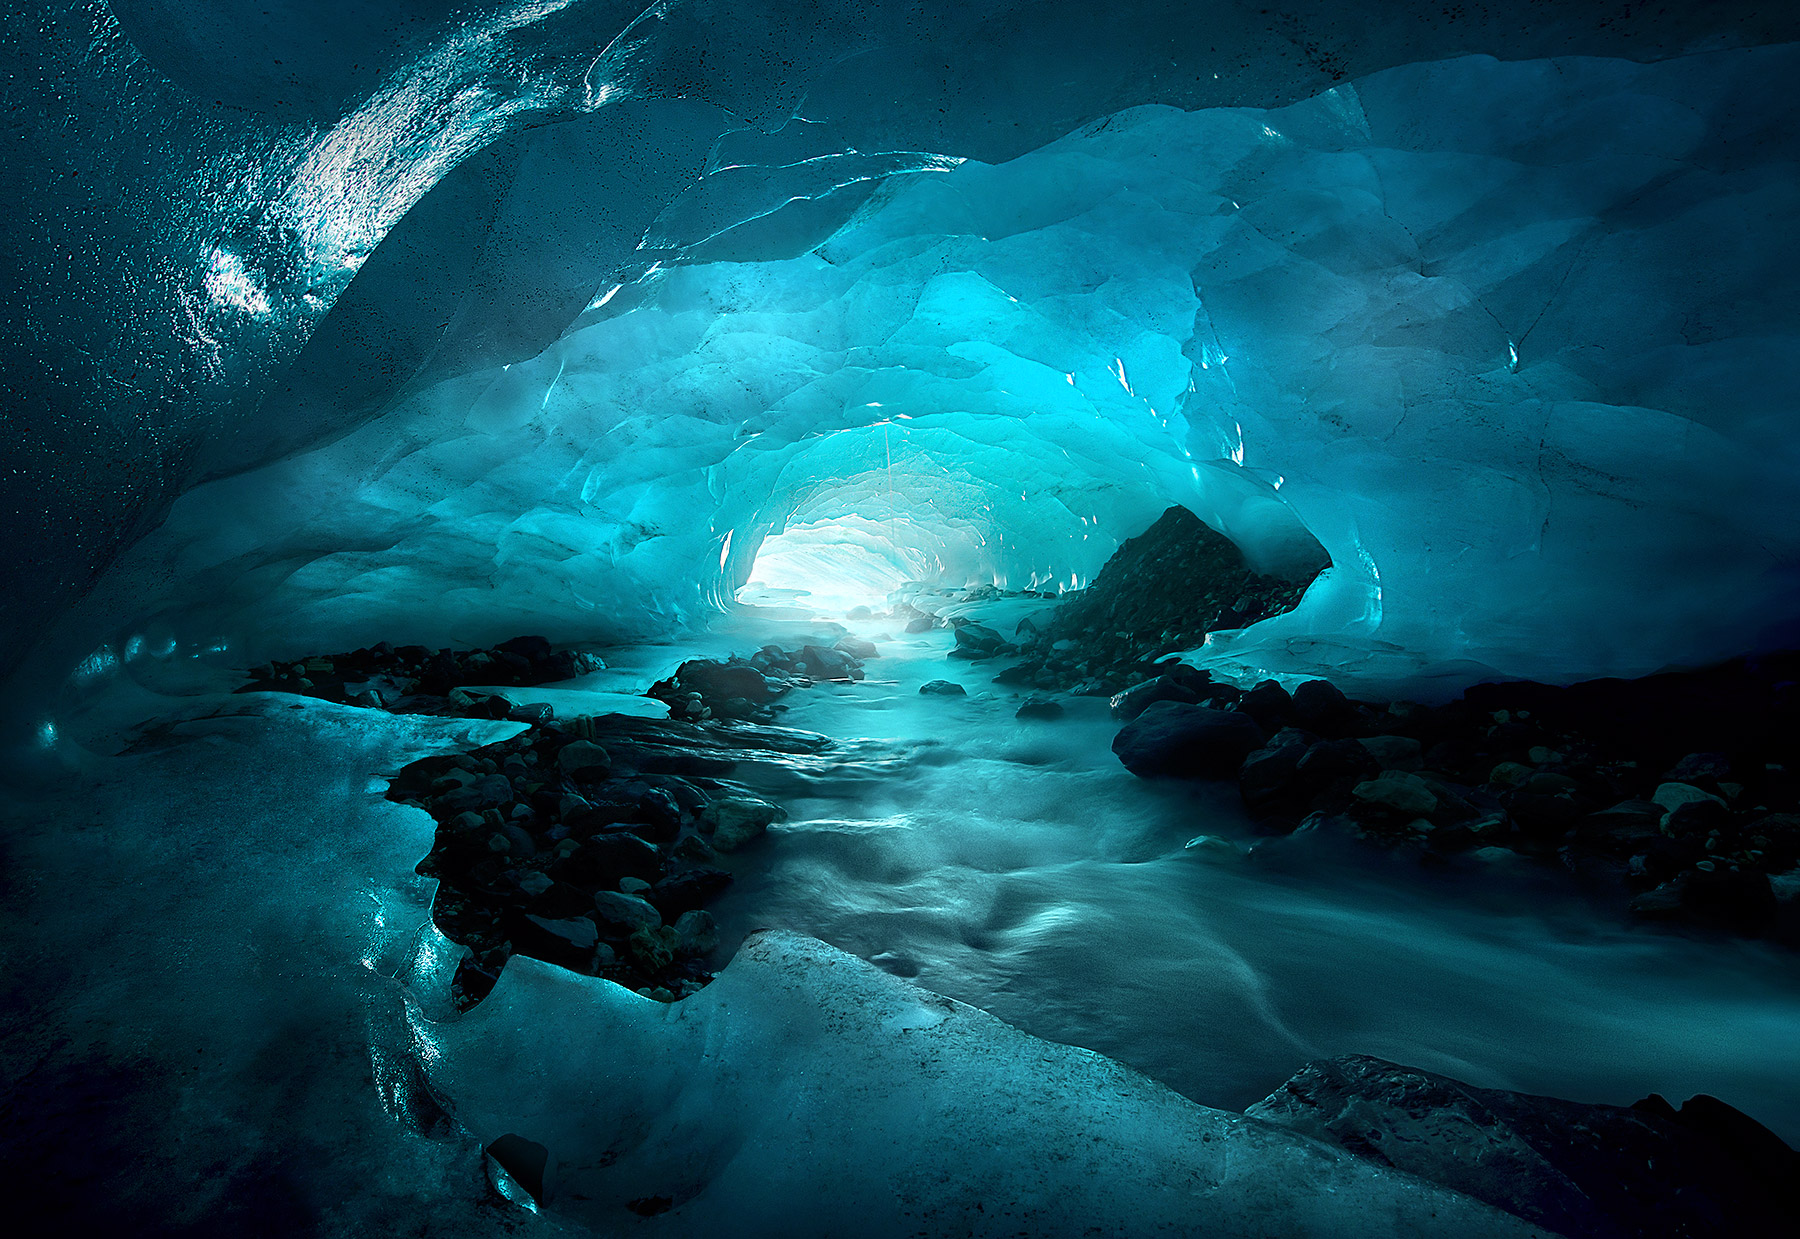 A photograph from inside the amazing world of ice caves, tunnels and other sub-glacial passages I found while trekking across...